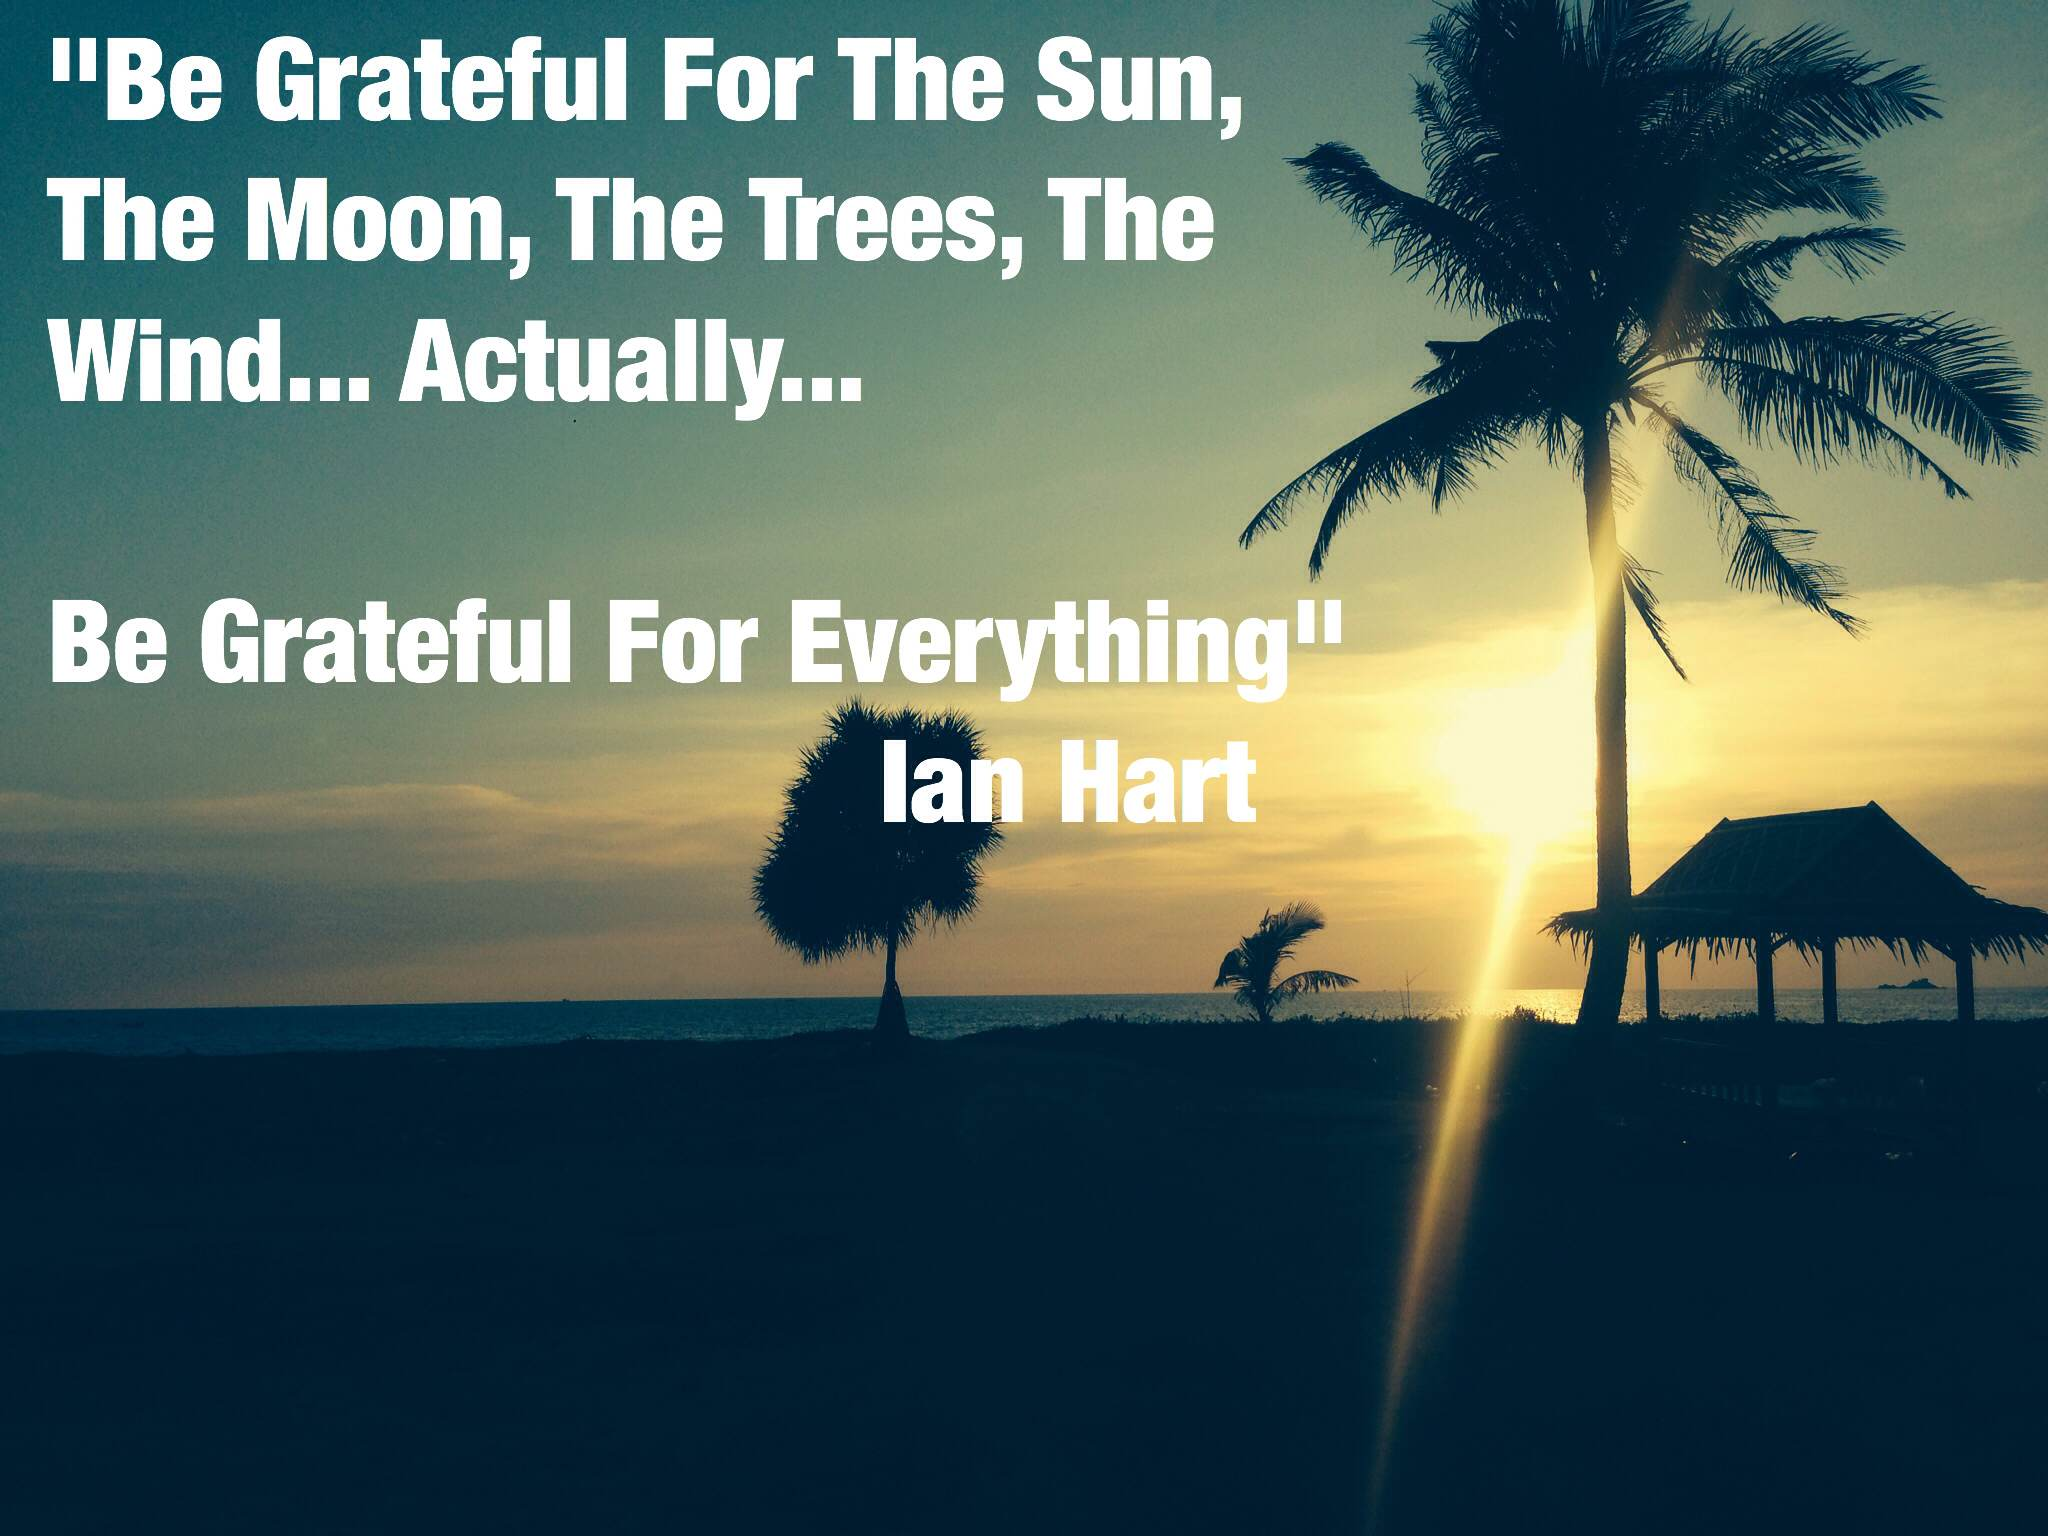 IMG 2796 EarthFIT Quote of the Day: Be Grateful For Everything